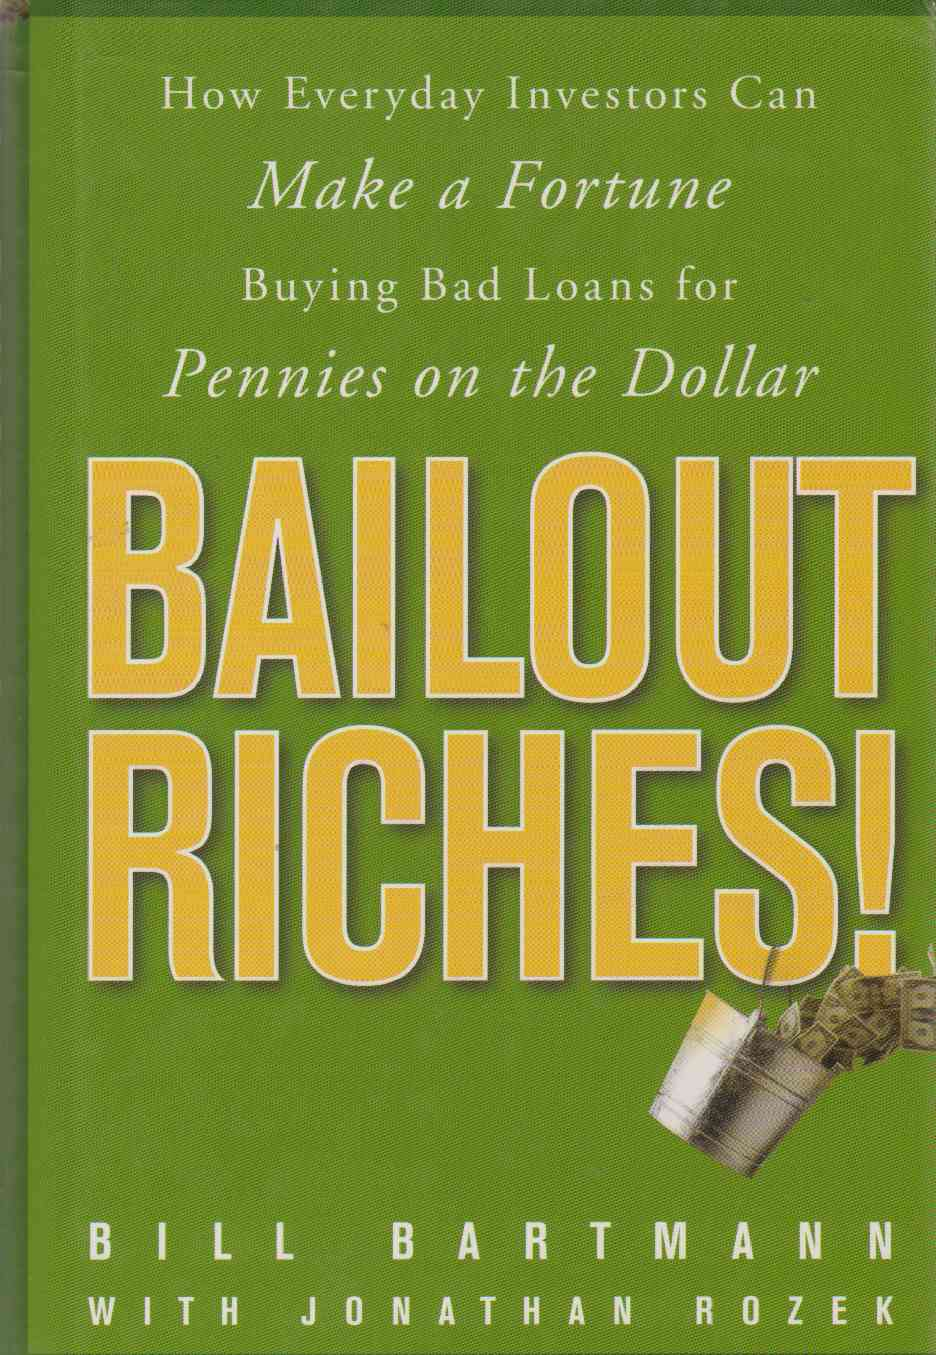 BAILOUT RICHES!  How Everyday Investors Can Make a Fortune Buying Bad Loans for Pennies on the Dollar, Bartmann, Bill & Jonathan Rozek